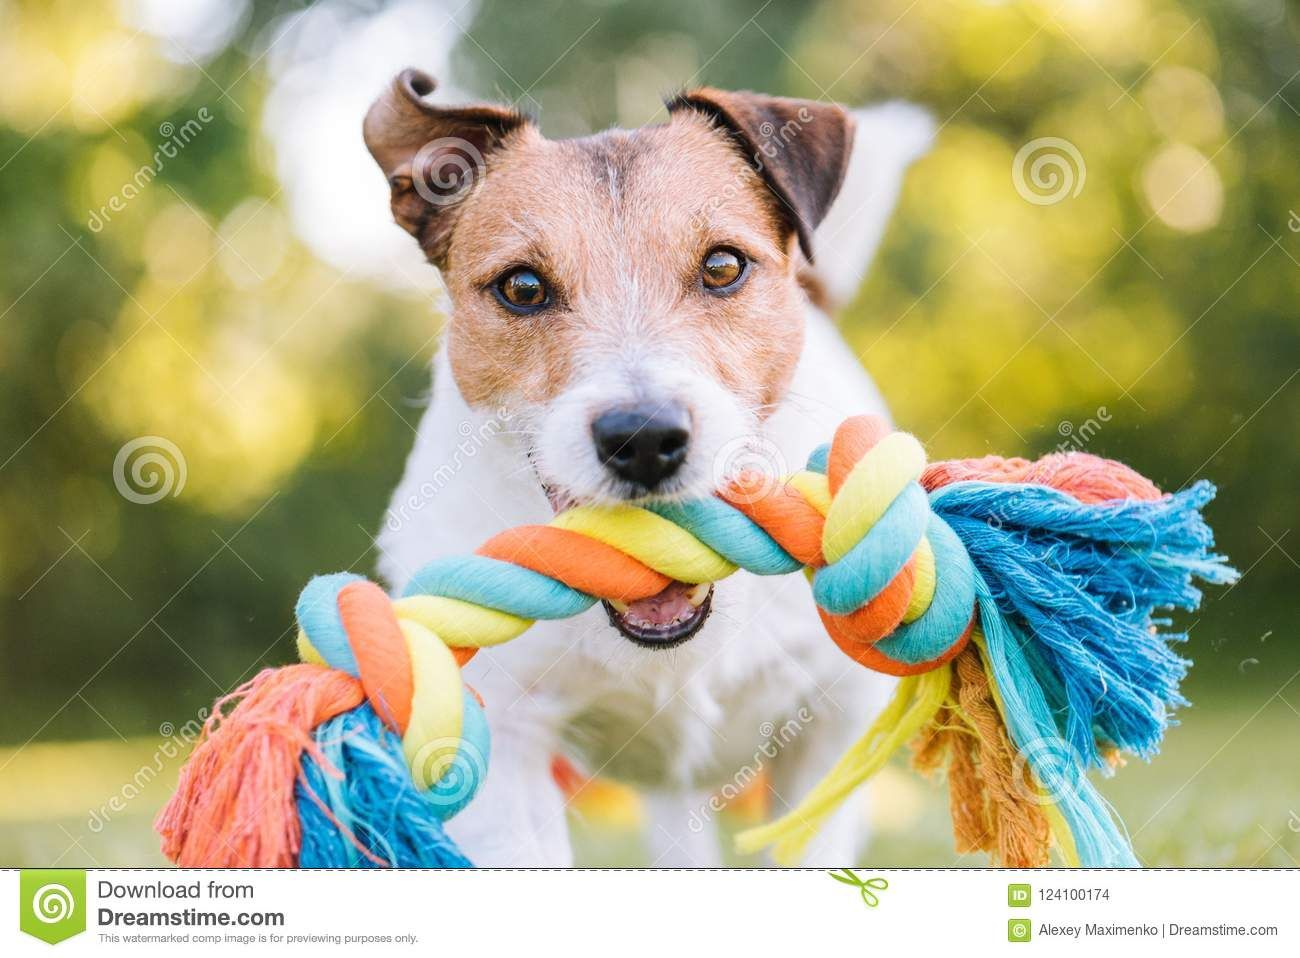 Dog Playing Fetch With Colorful Toy Rope With Images Dogs